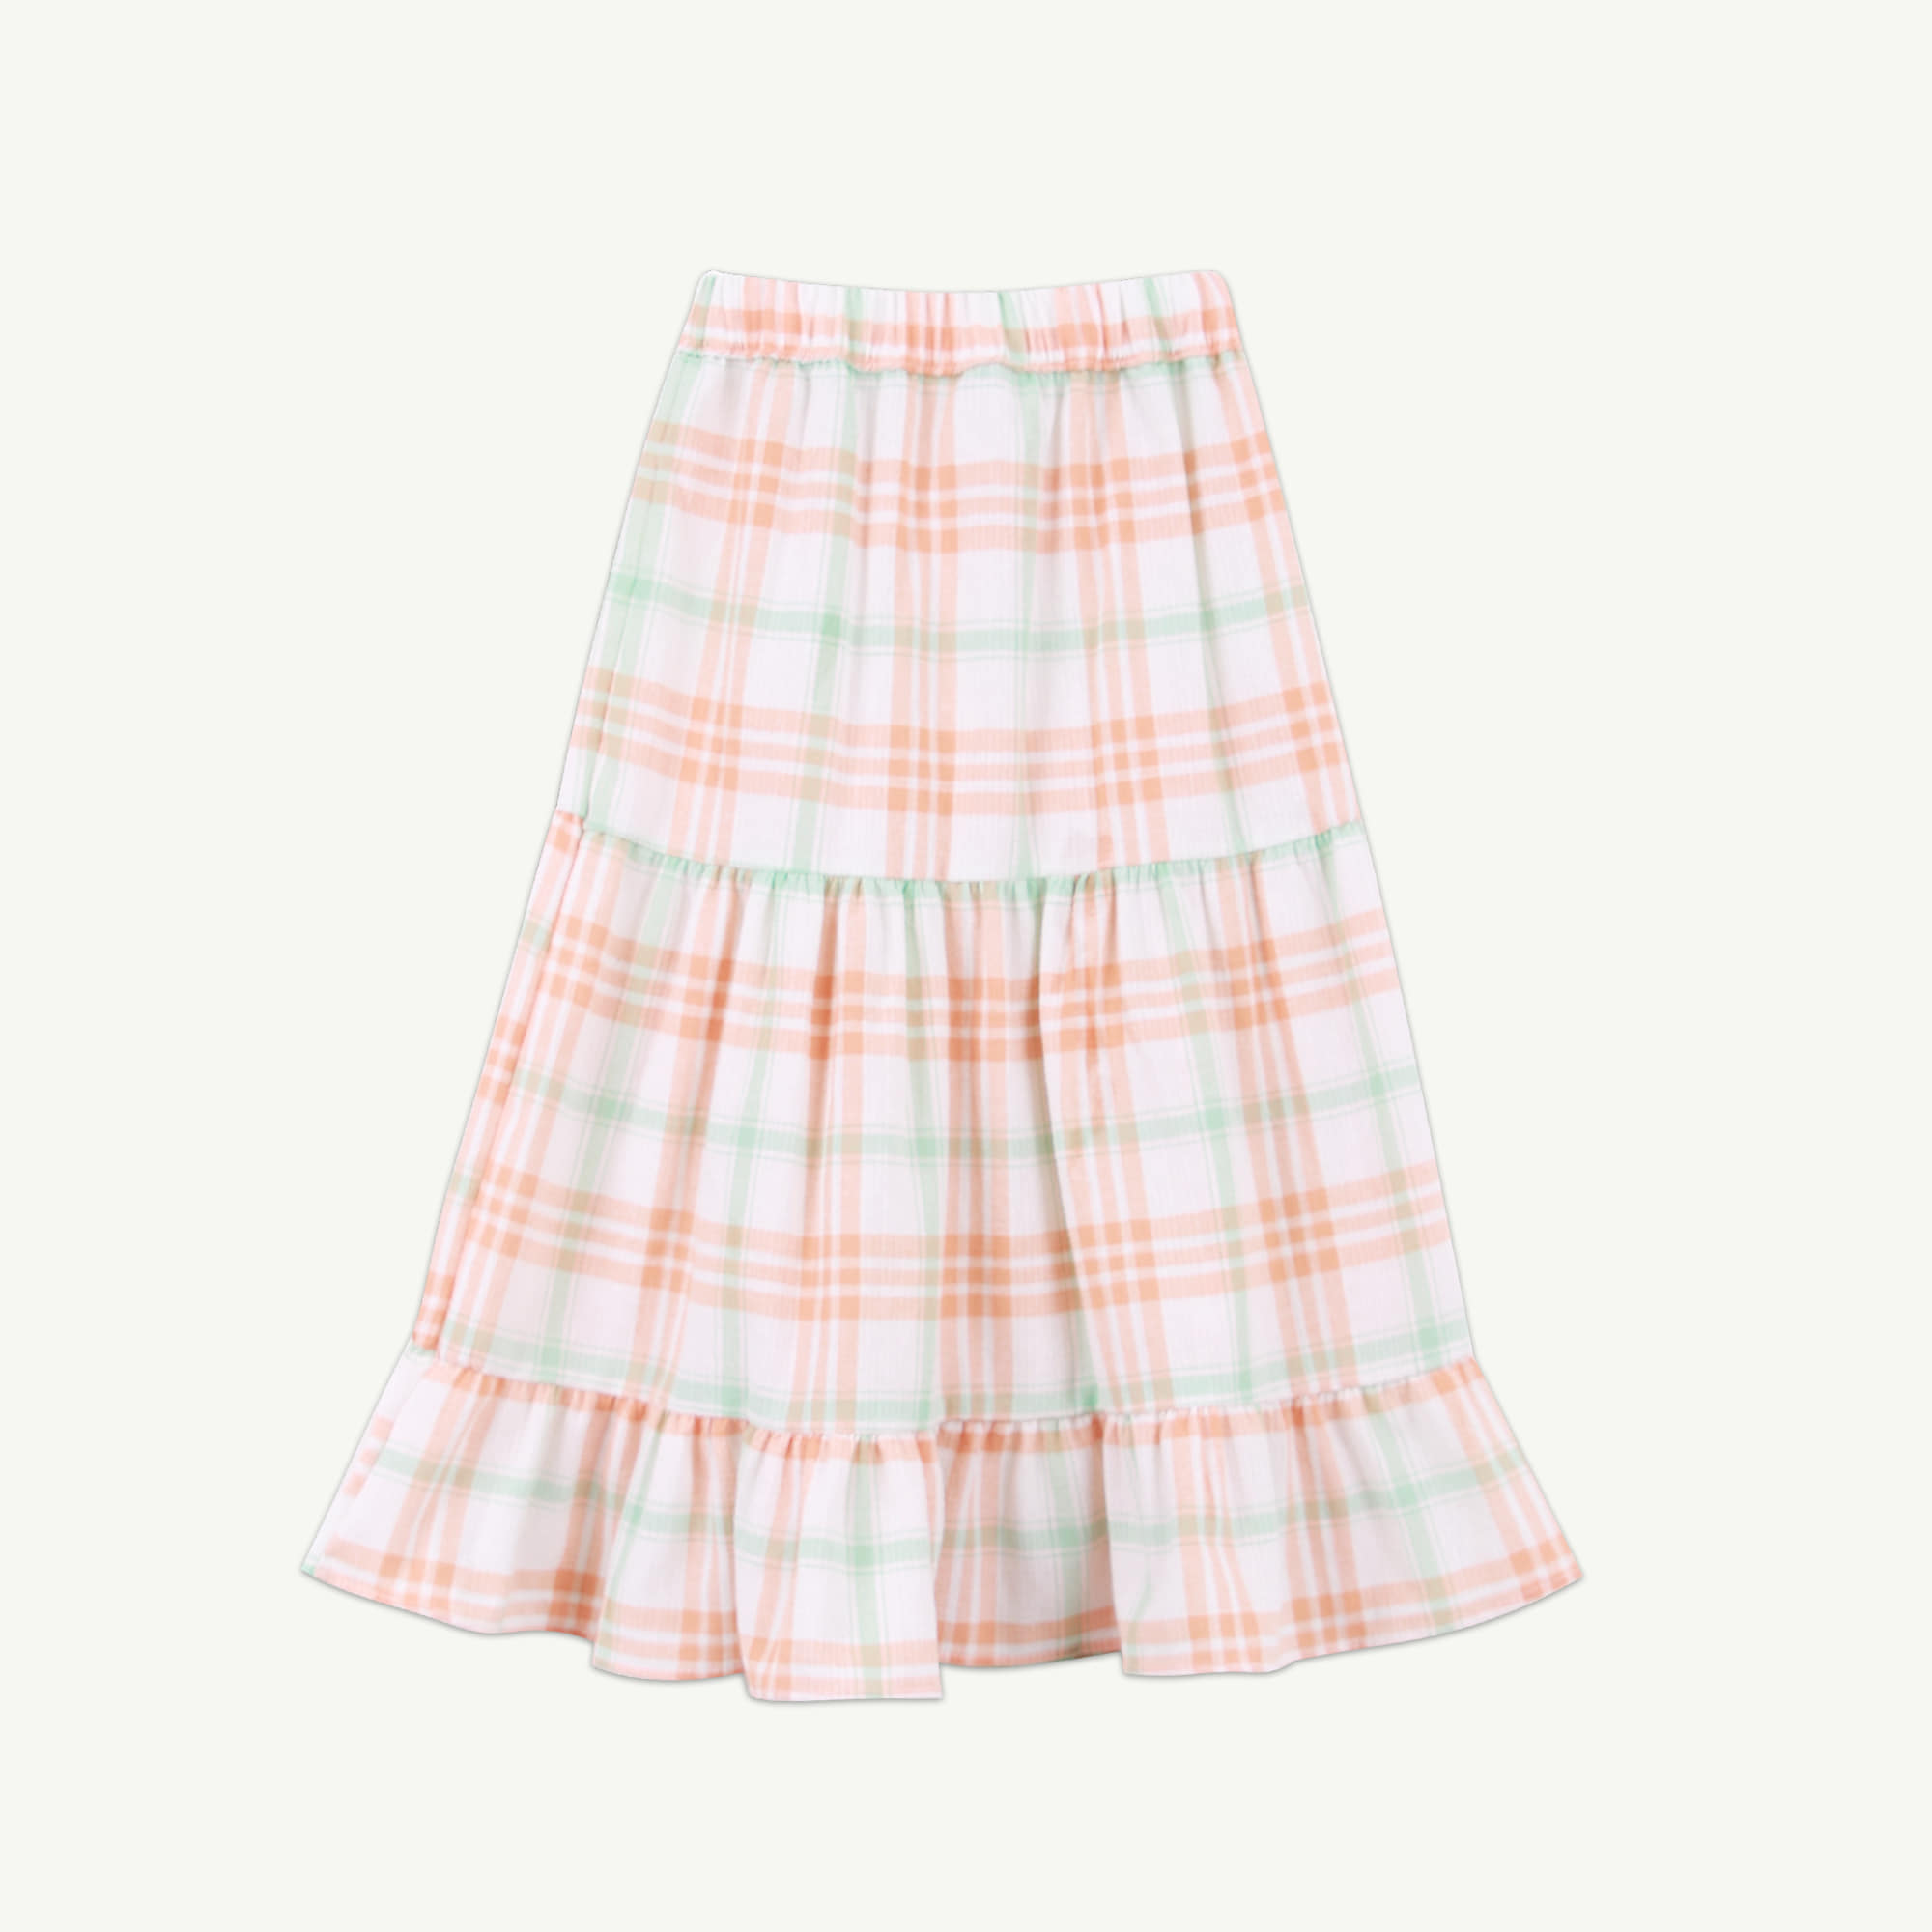 21 S/S Check skirt (당일발송)